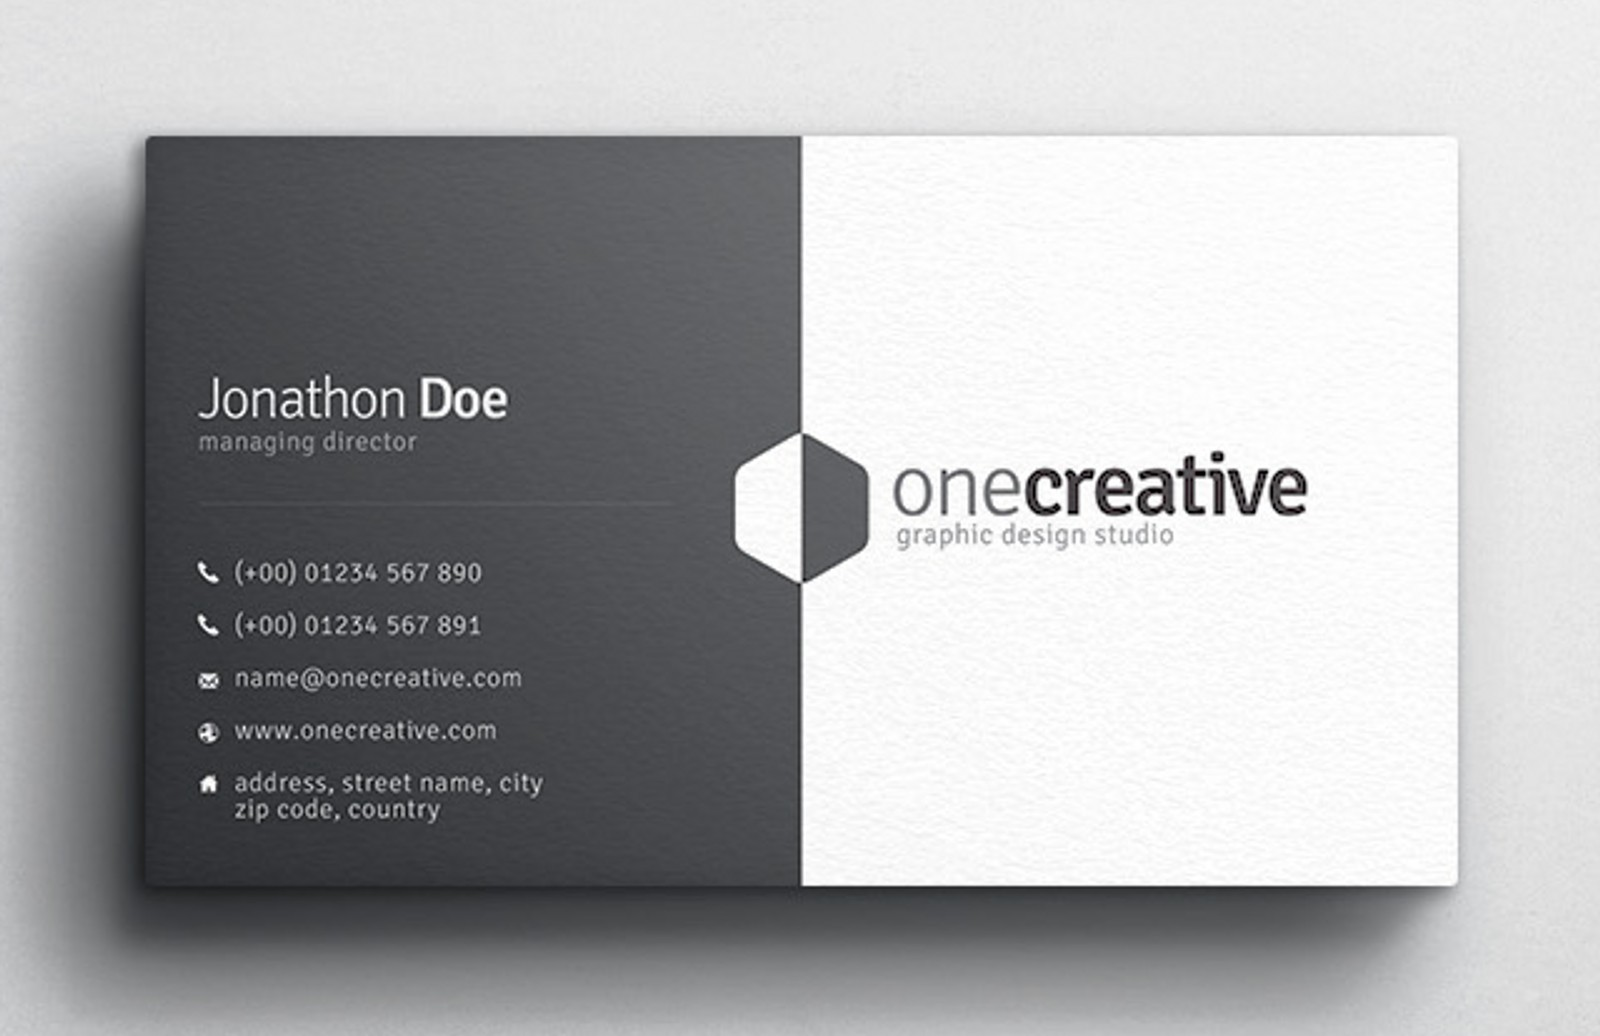 Duo business card design medialoot duo business card design cheaphphosting Images